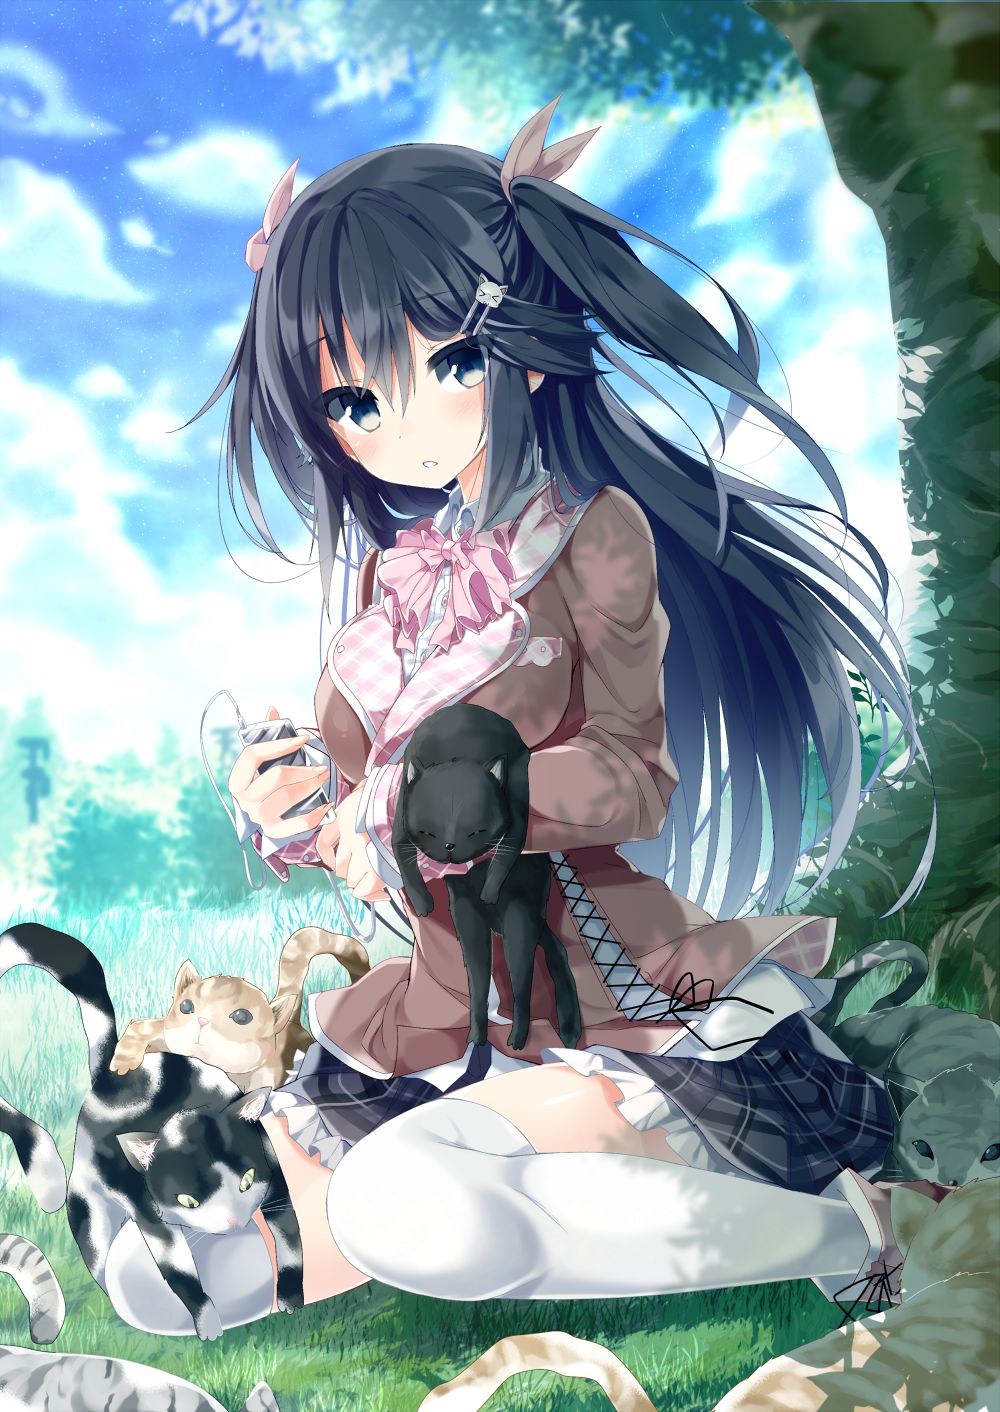 Neko, Cat, Black Hair, Blank Expression, Illustration, Black Eyes